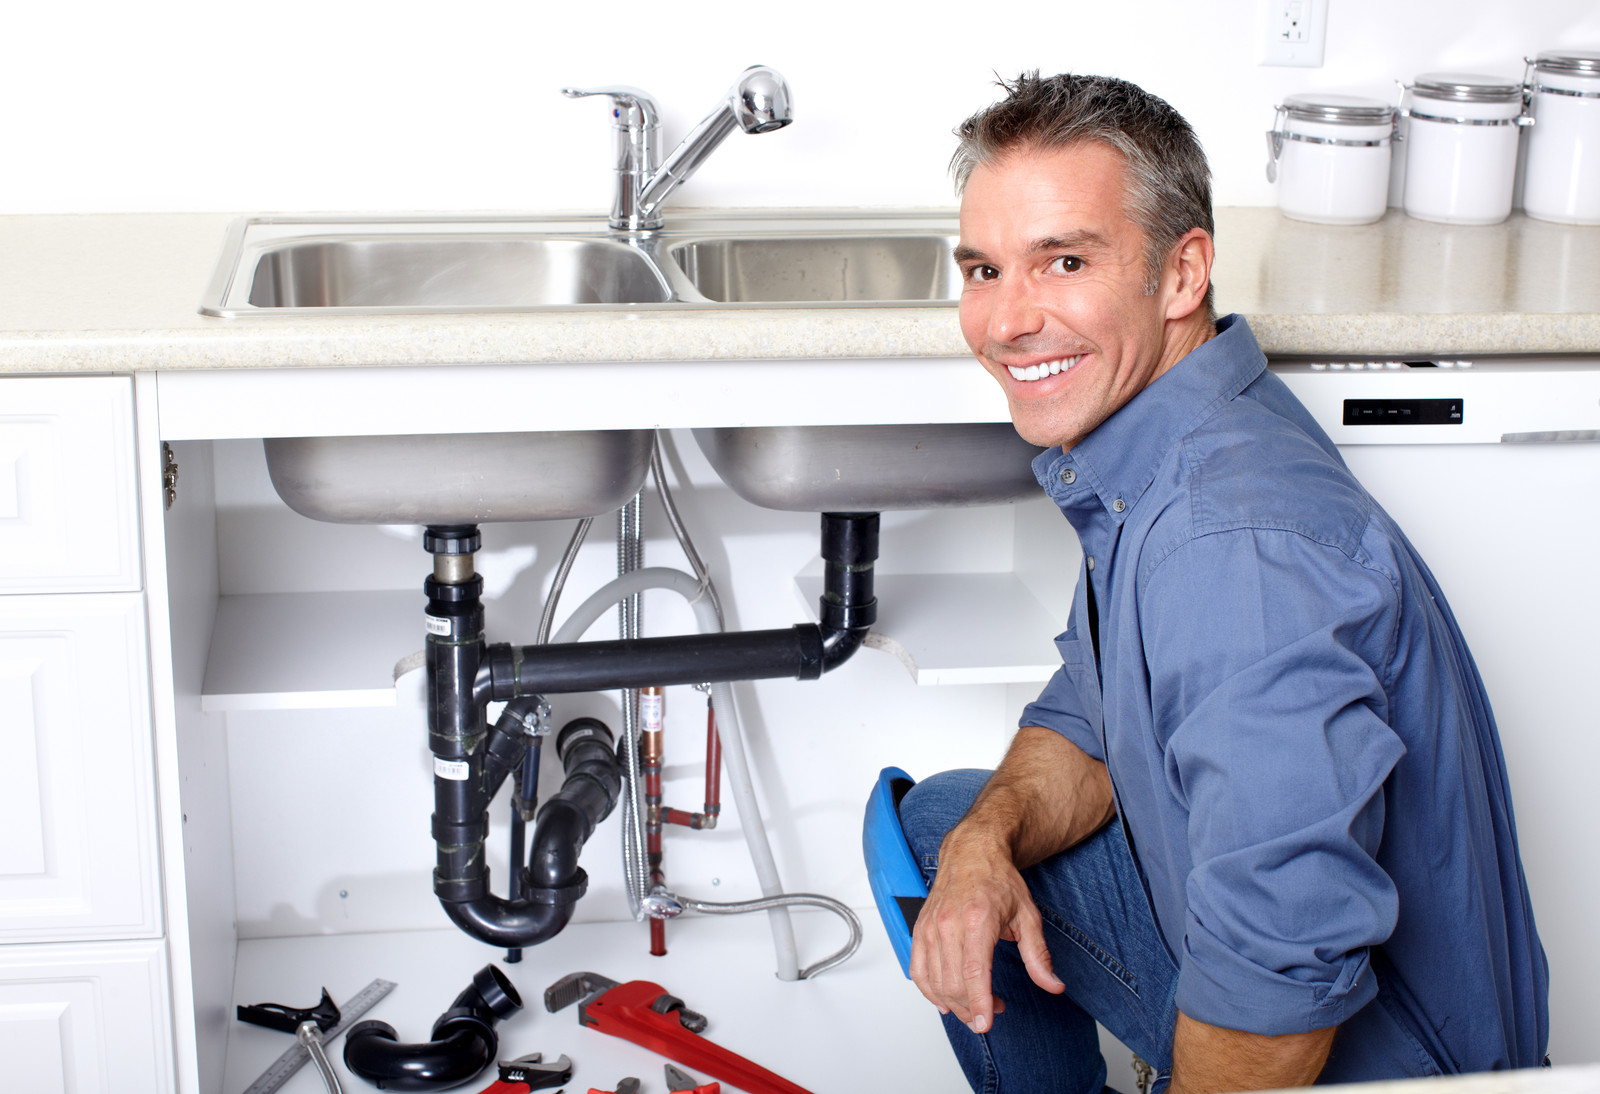 A Guide To Plumbing Qualifications In The Uk